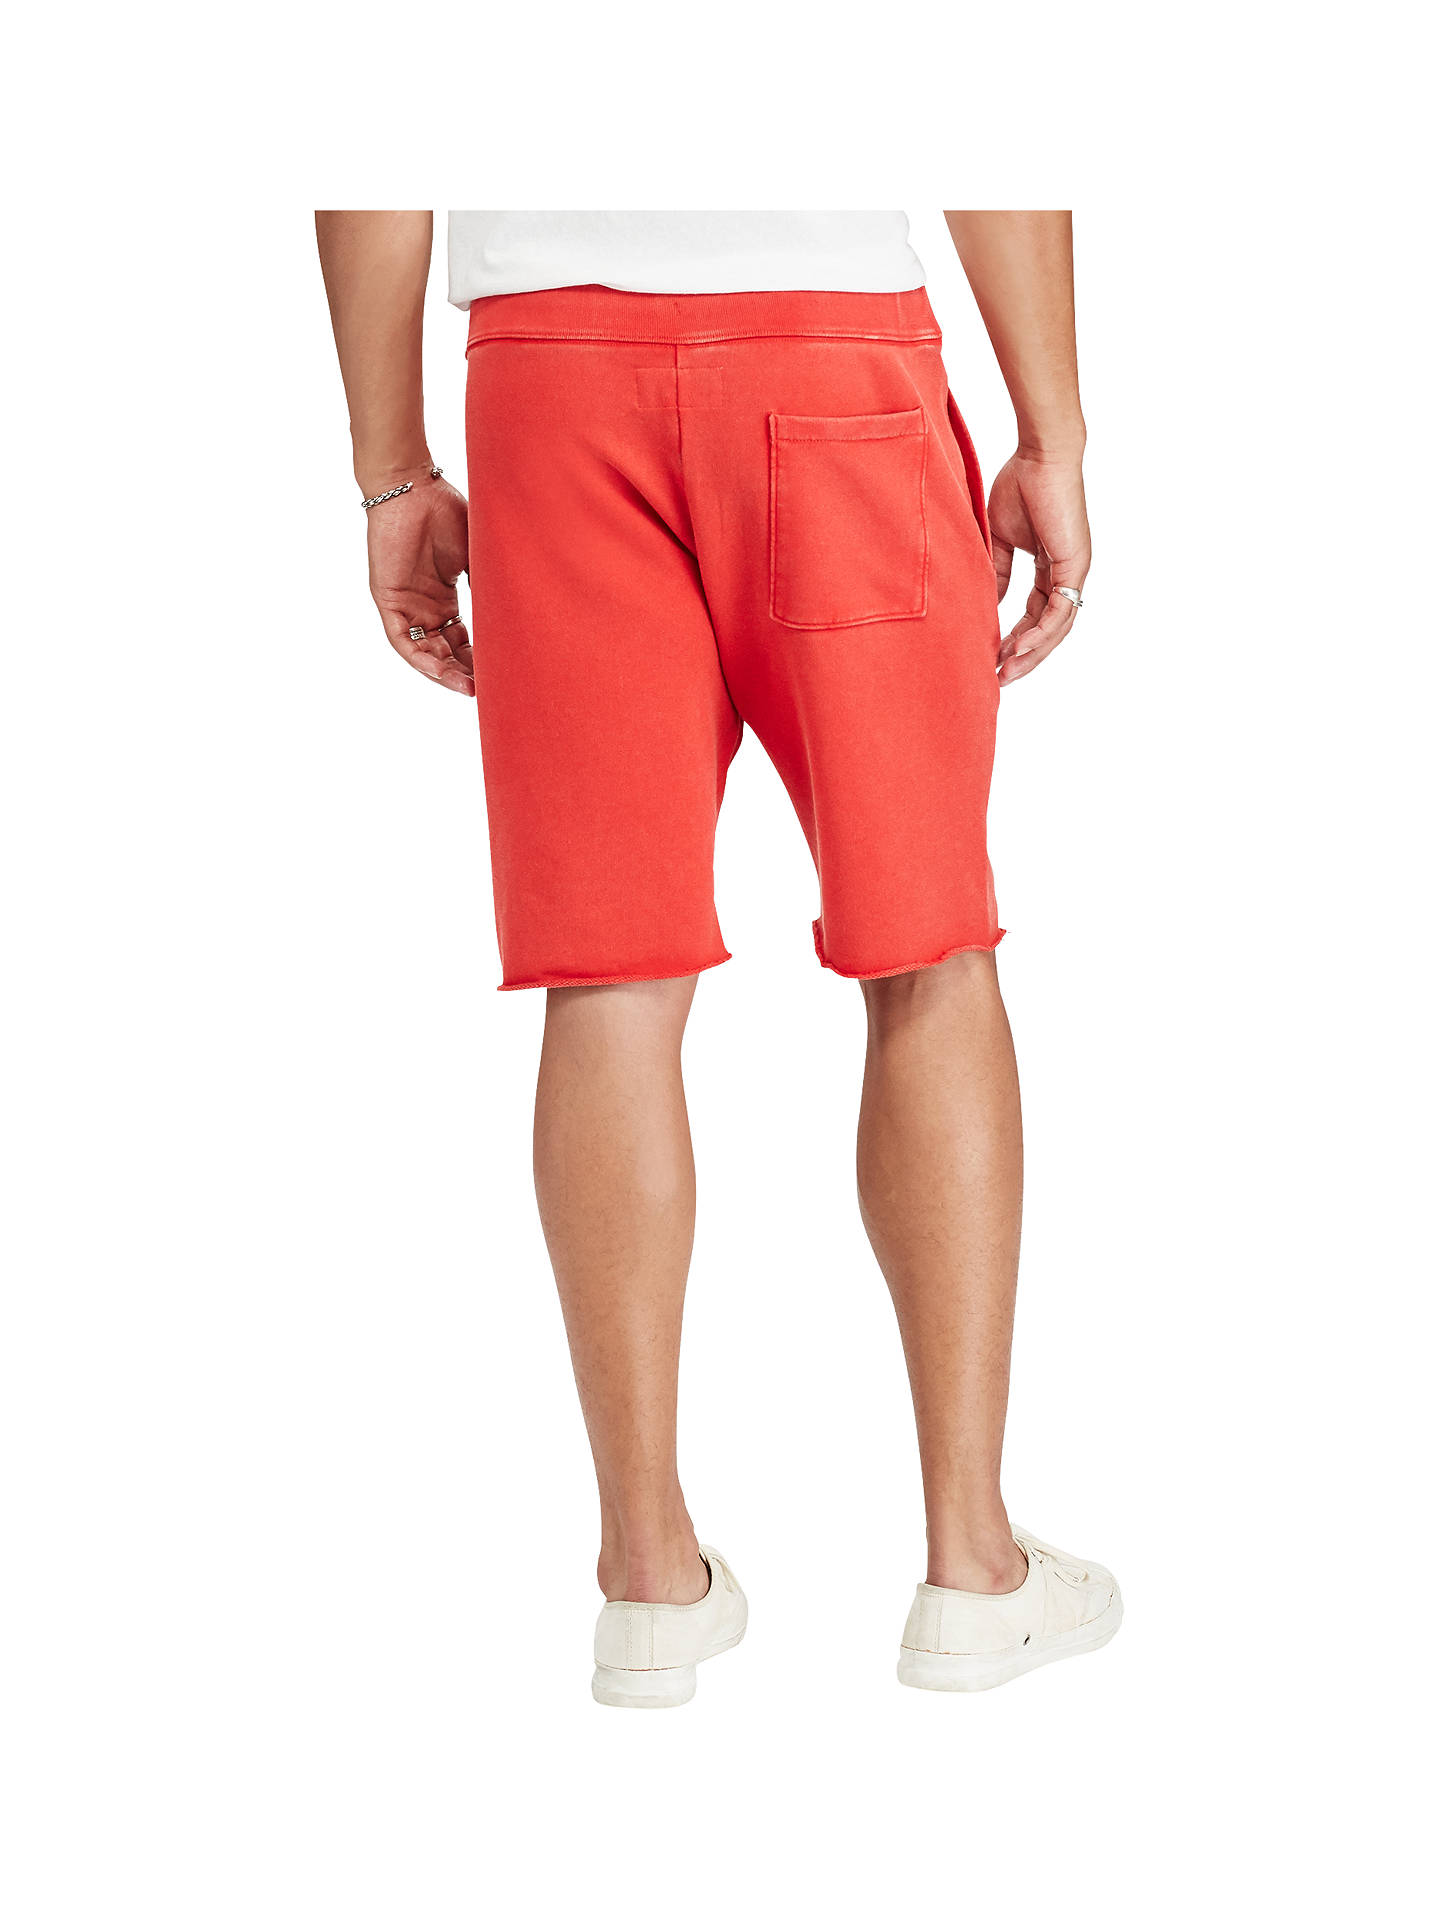 e7ba844a334 ... Buy Denim & Supply Ralph Lauren Cotton French Terry Cutoff Sweat Shorts,  Ancient Red, ...